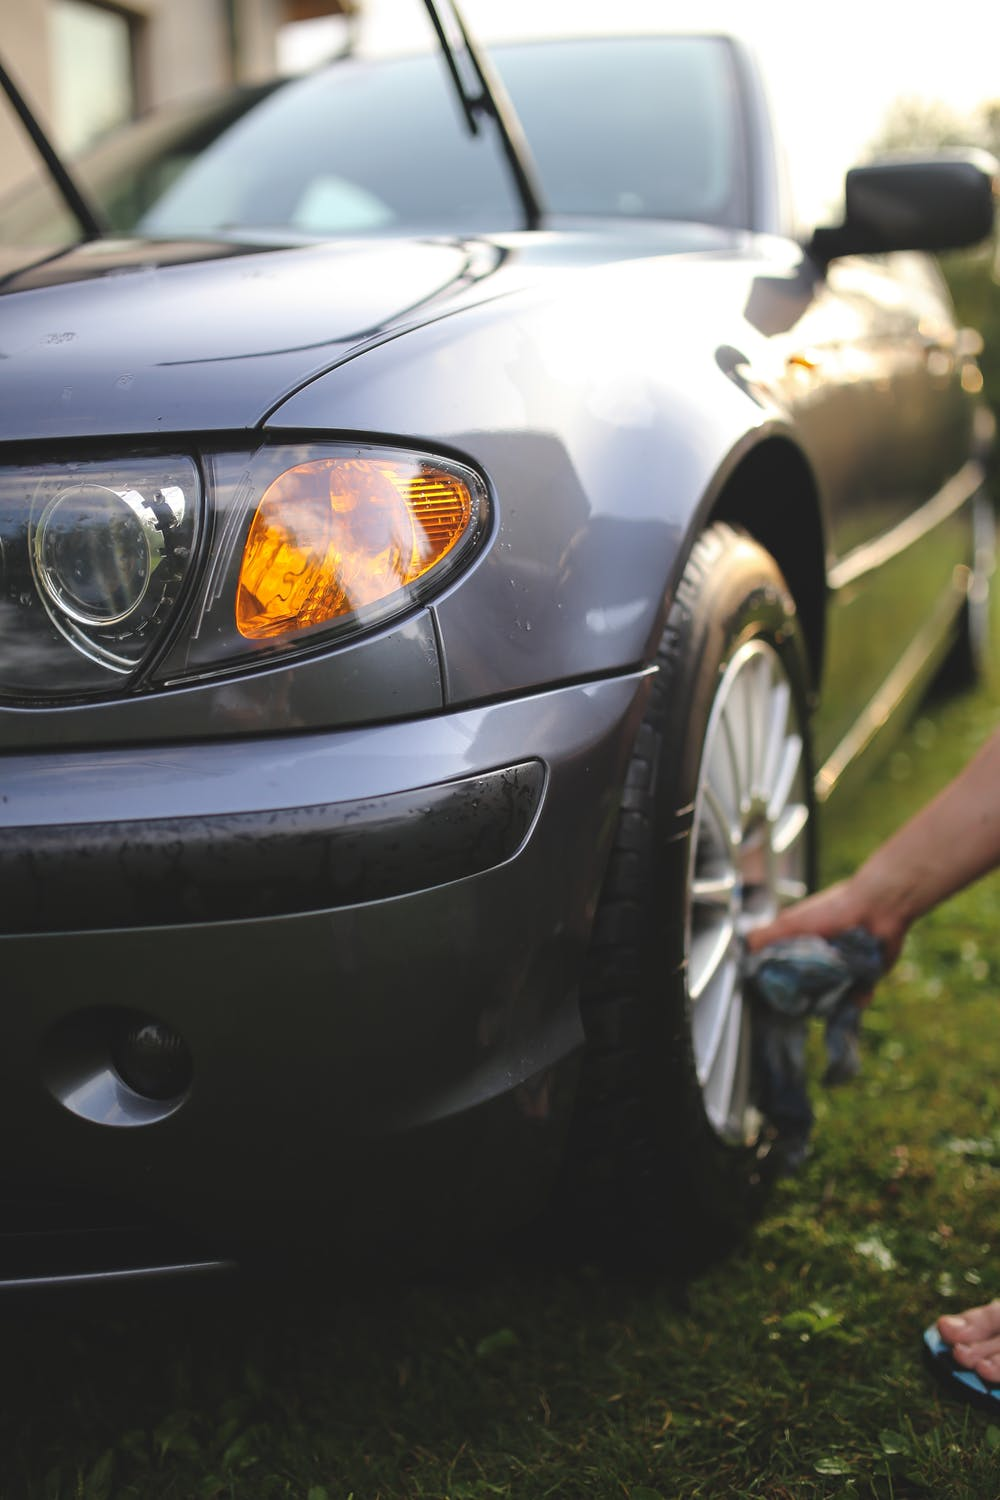 Basic Car Maintenance Tasks You Can Master at Home